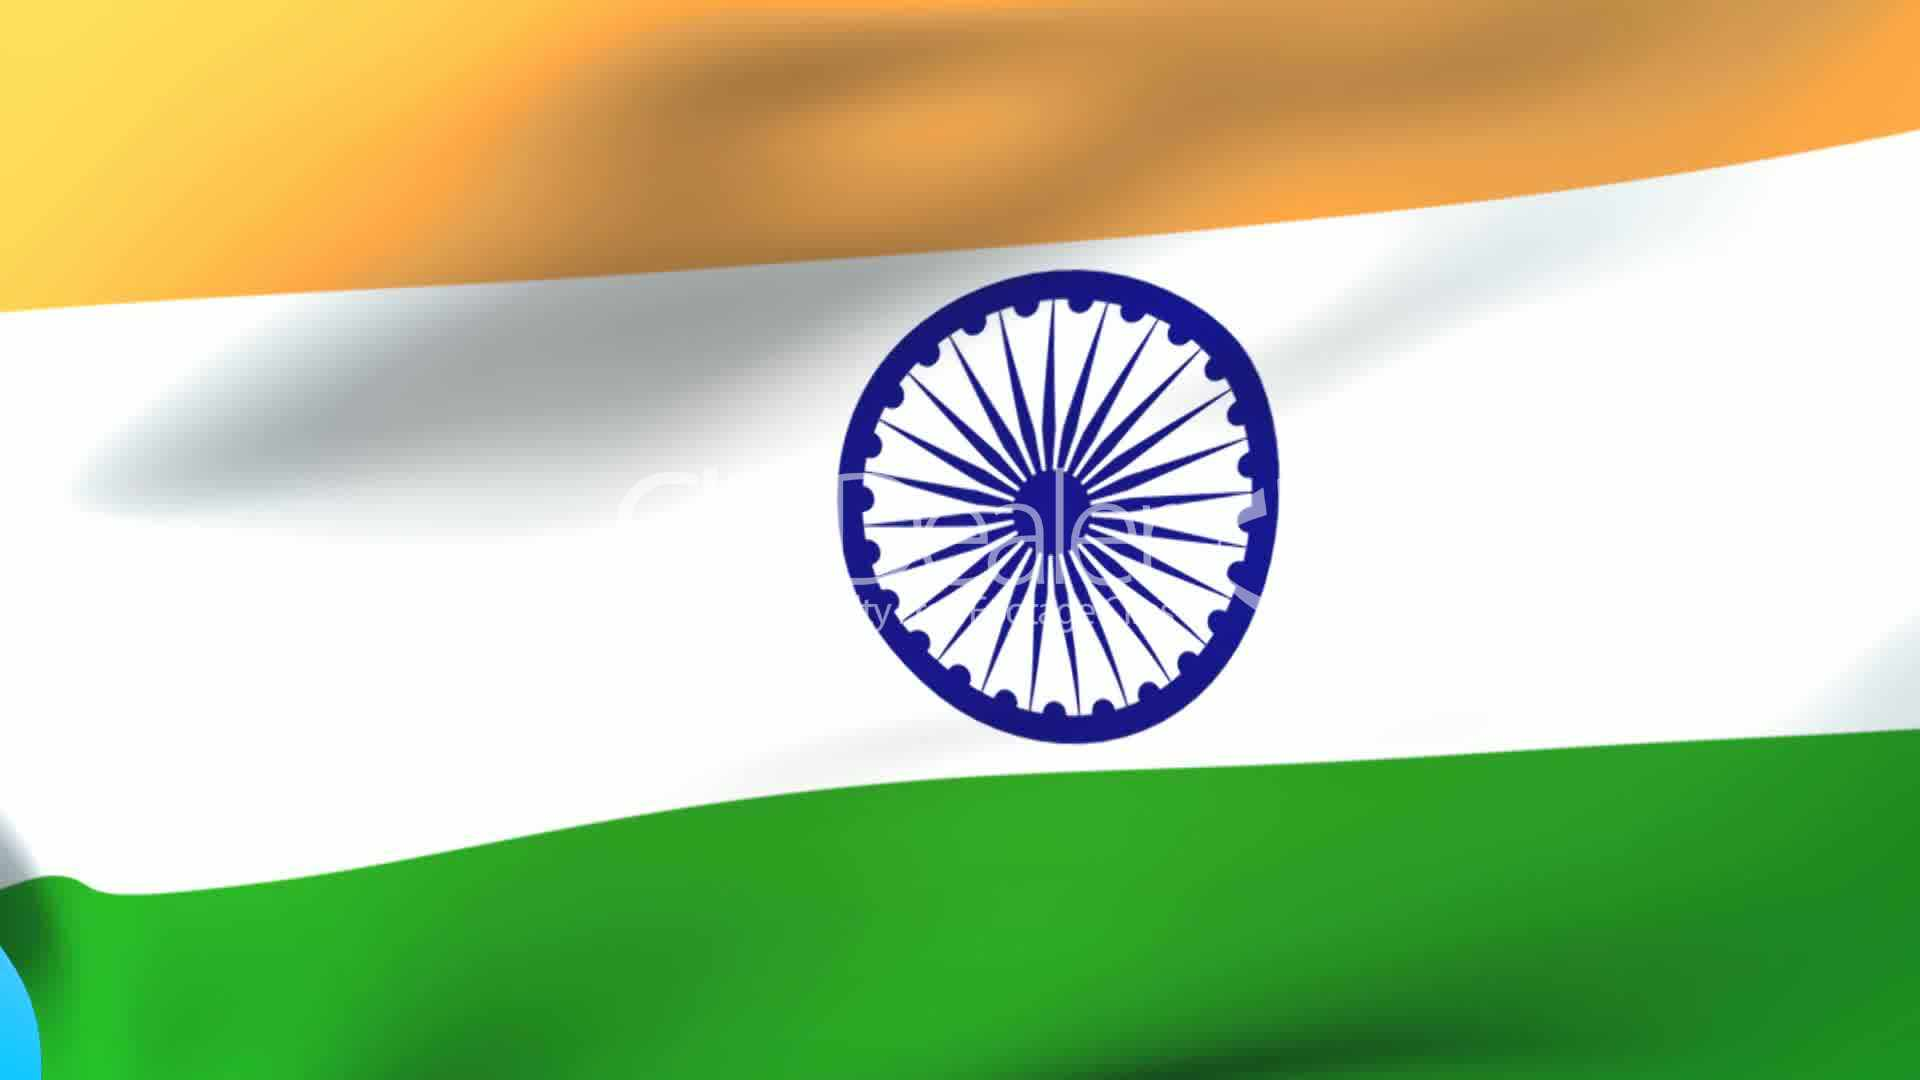 Indian Animated Flag Waving: India Waving Flag: Royalty-free Video And Stock Footage